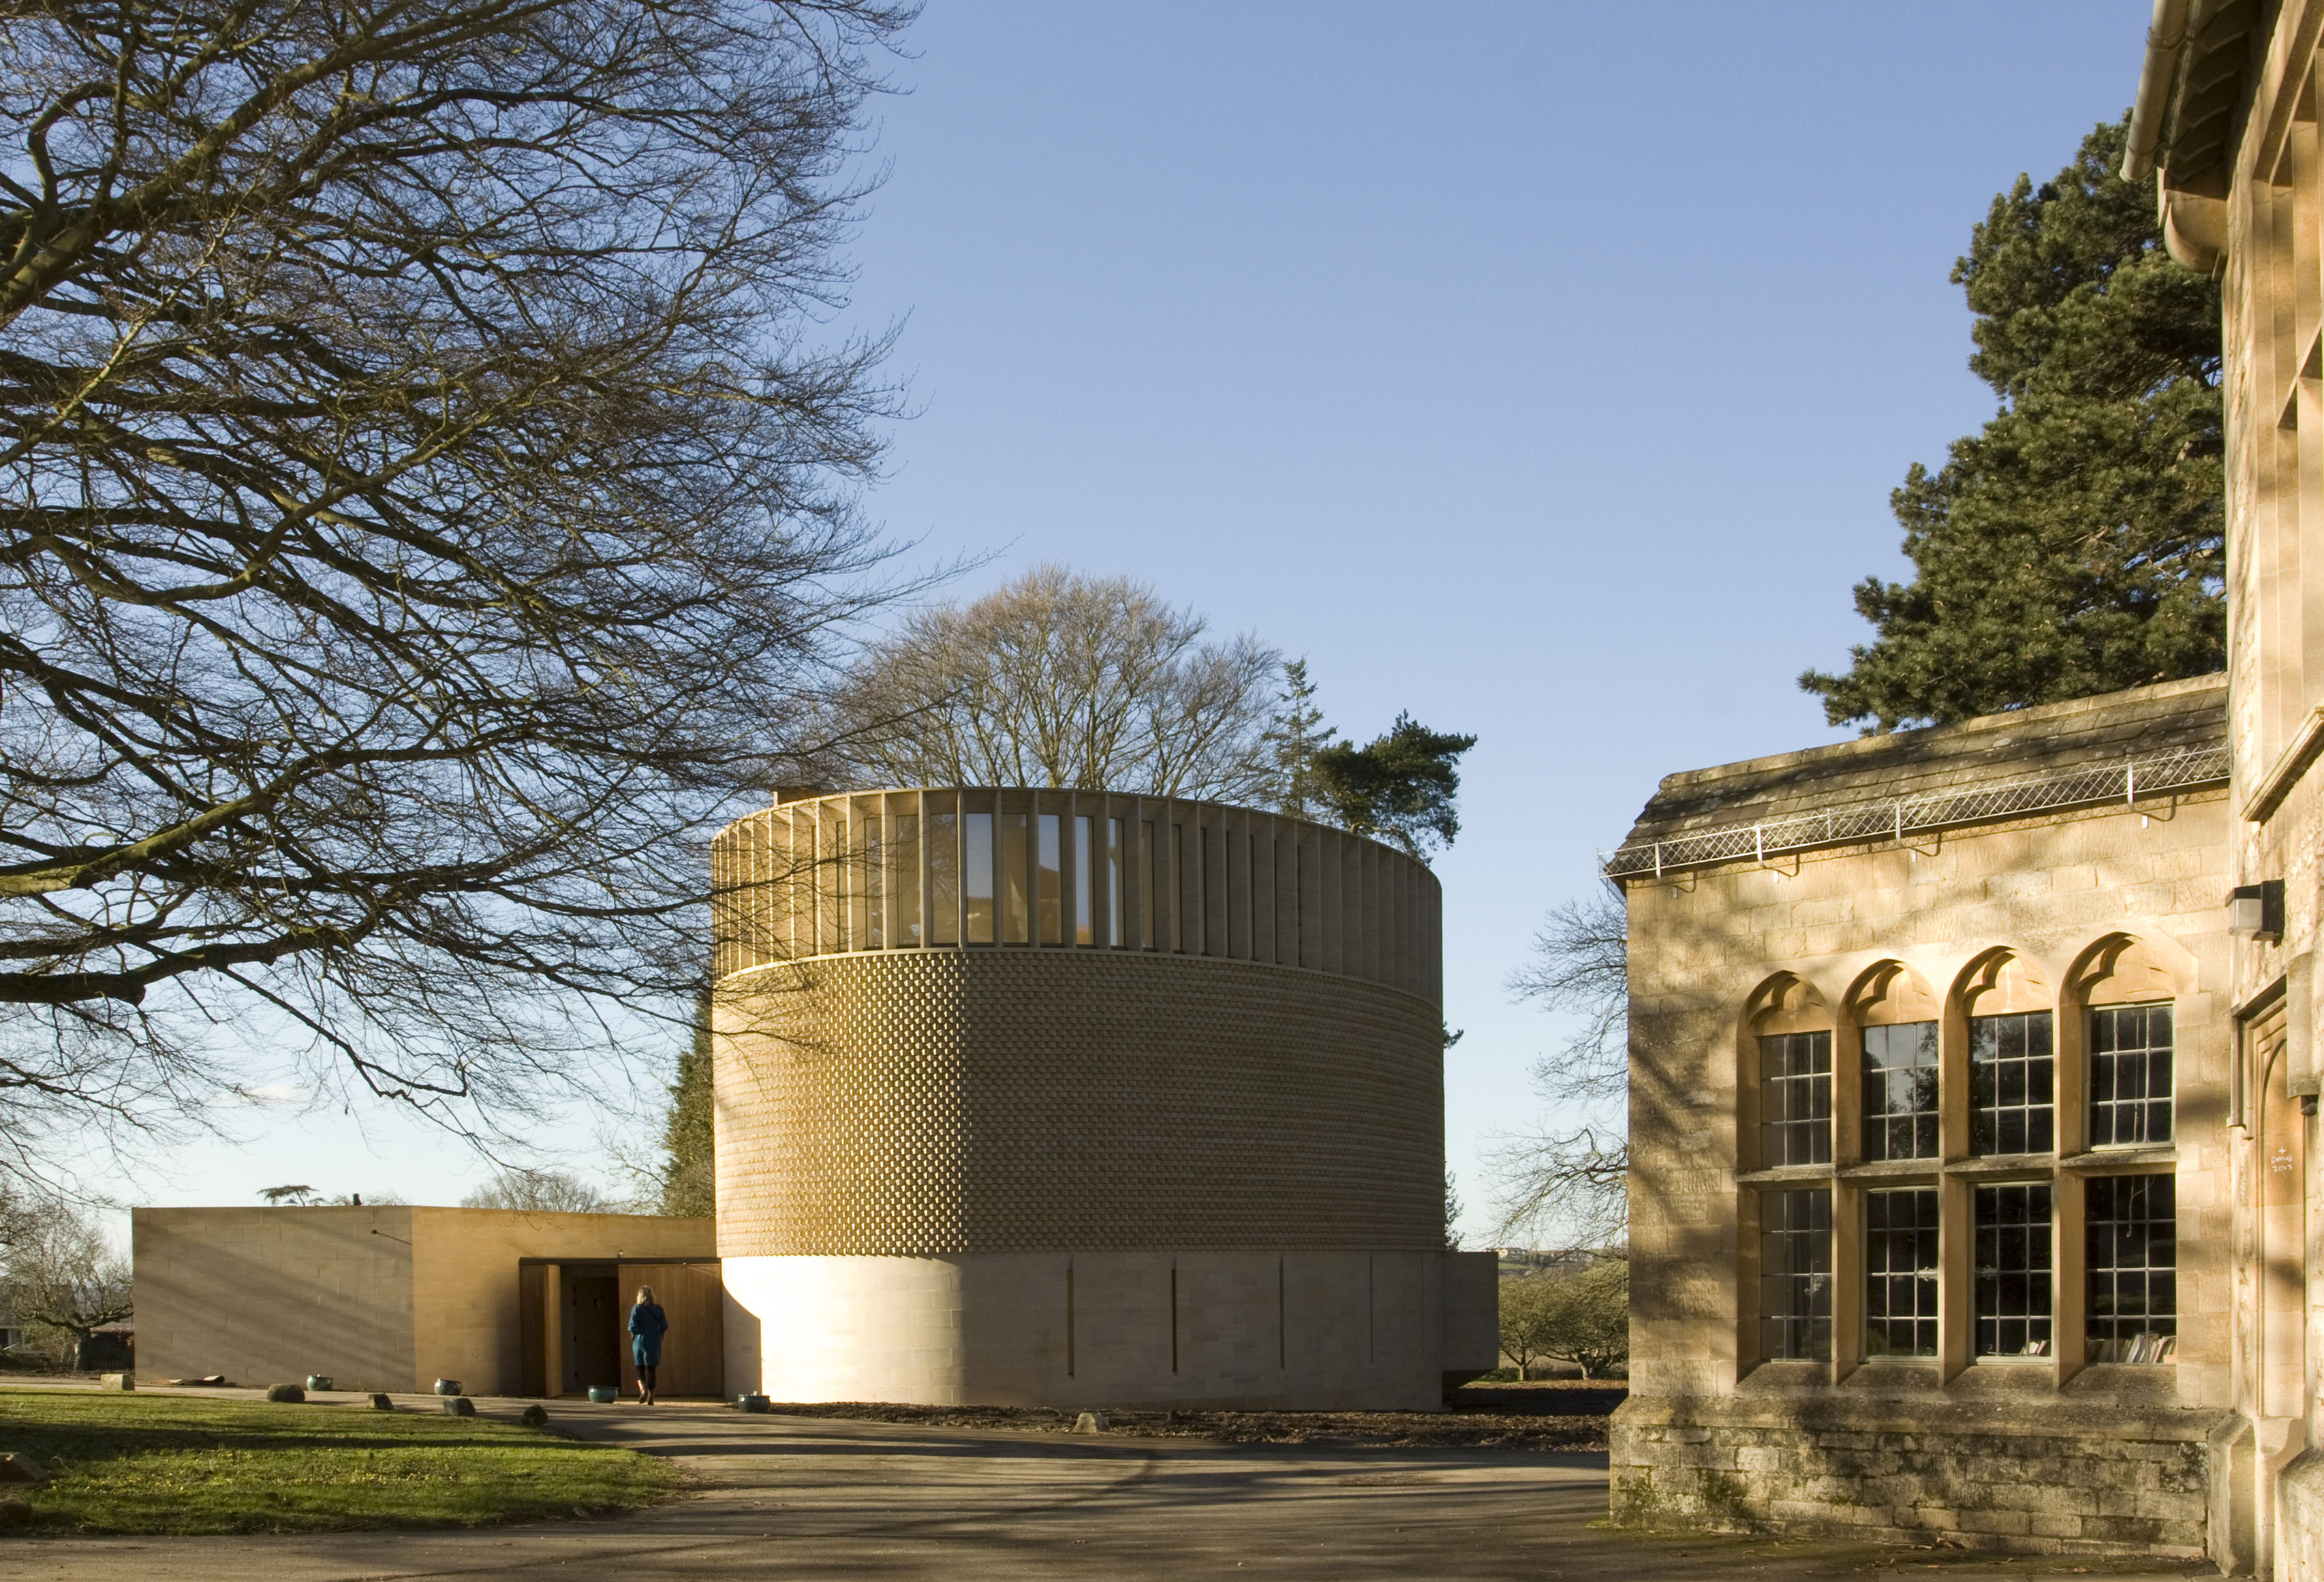 Bishop Edward King Chapel, Ripon College, Cuddesdon